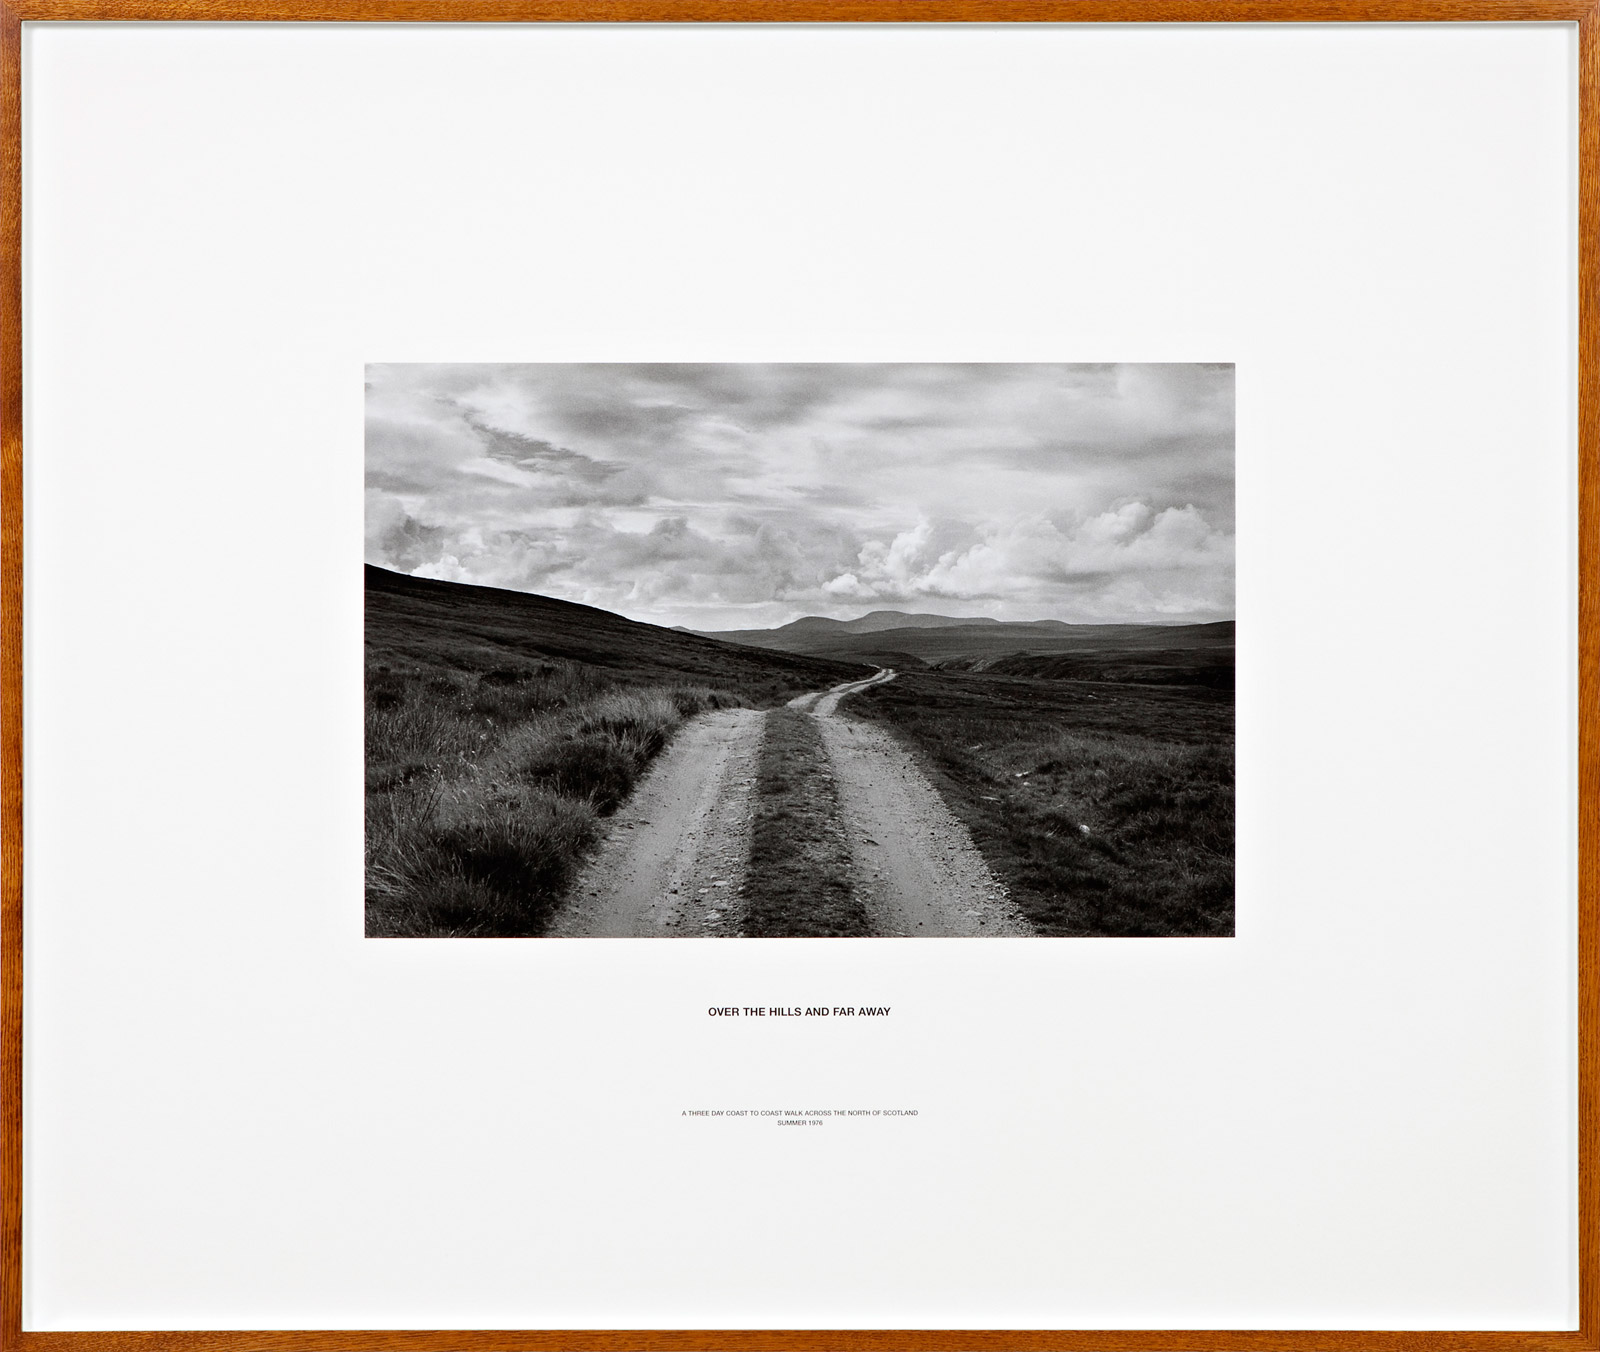 Over the Hills and Far Away, Scotland 1976, silver gelatin photograph and letterpress in artist frame, Unique, 117 x 139 cm